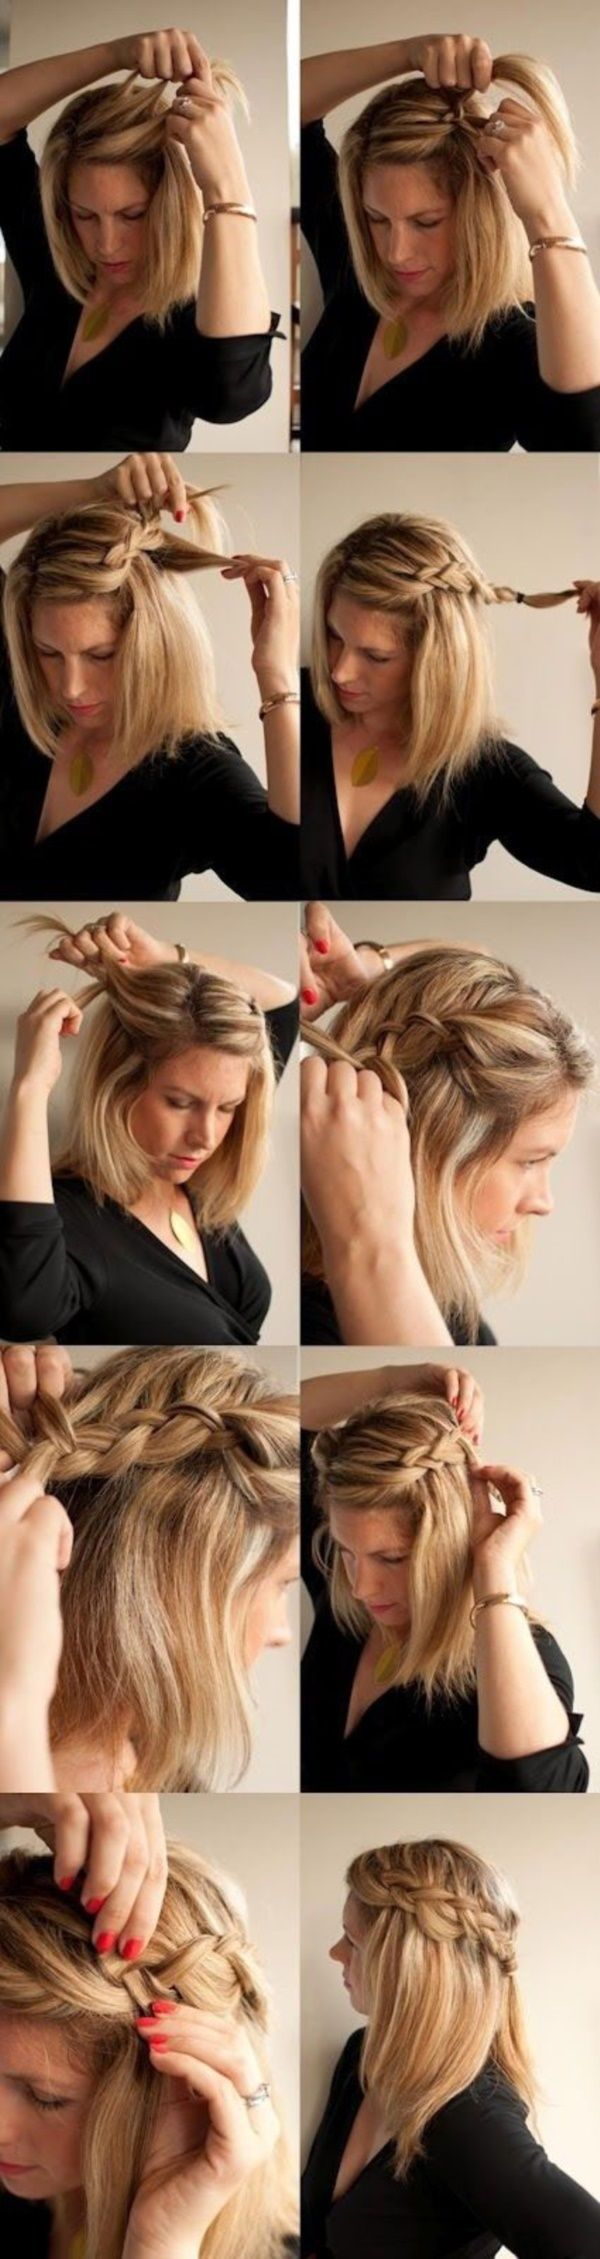 easy diy hairstyles for medium and long hair to snatch attention